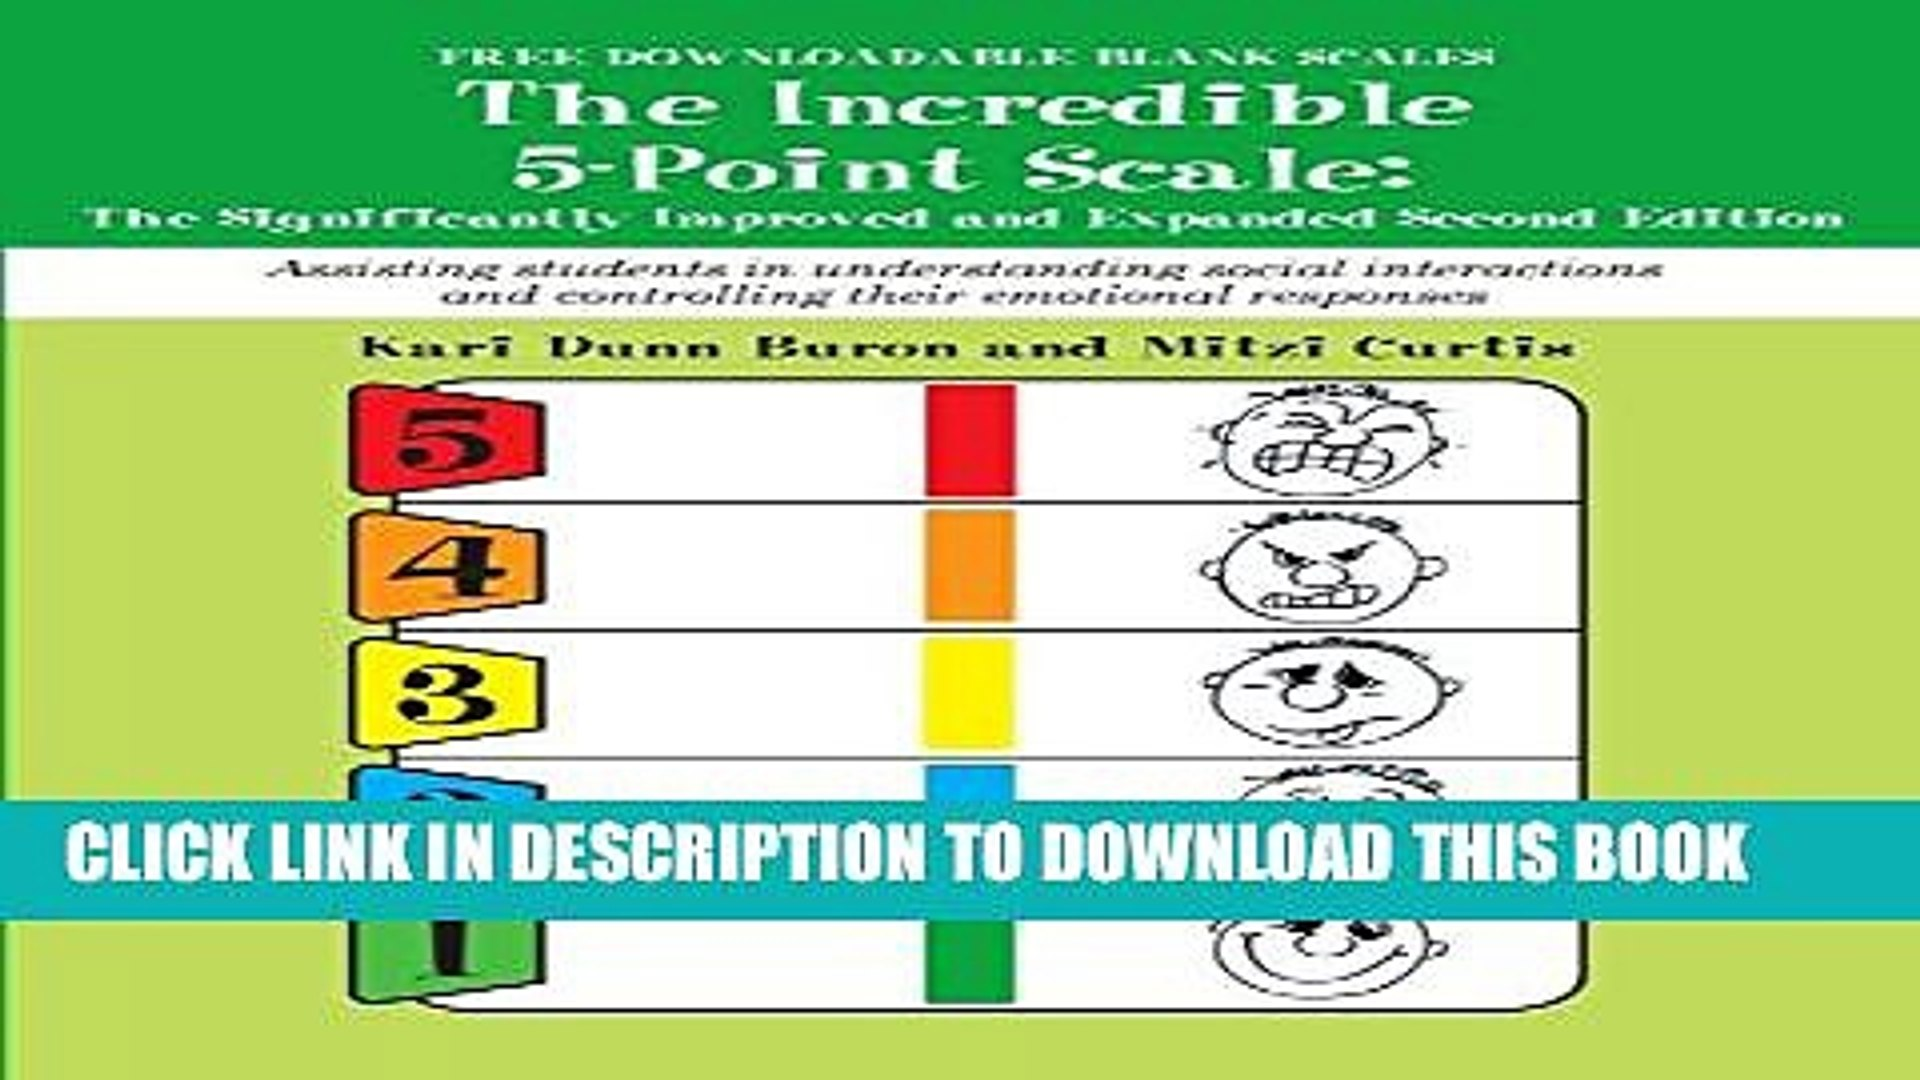 Pdf The Incredible 5 Point Scale Assisting Students In Understanding Social Interactions And Video Dailymotion